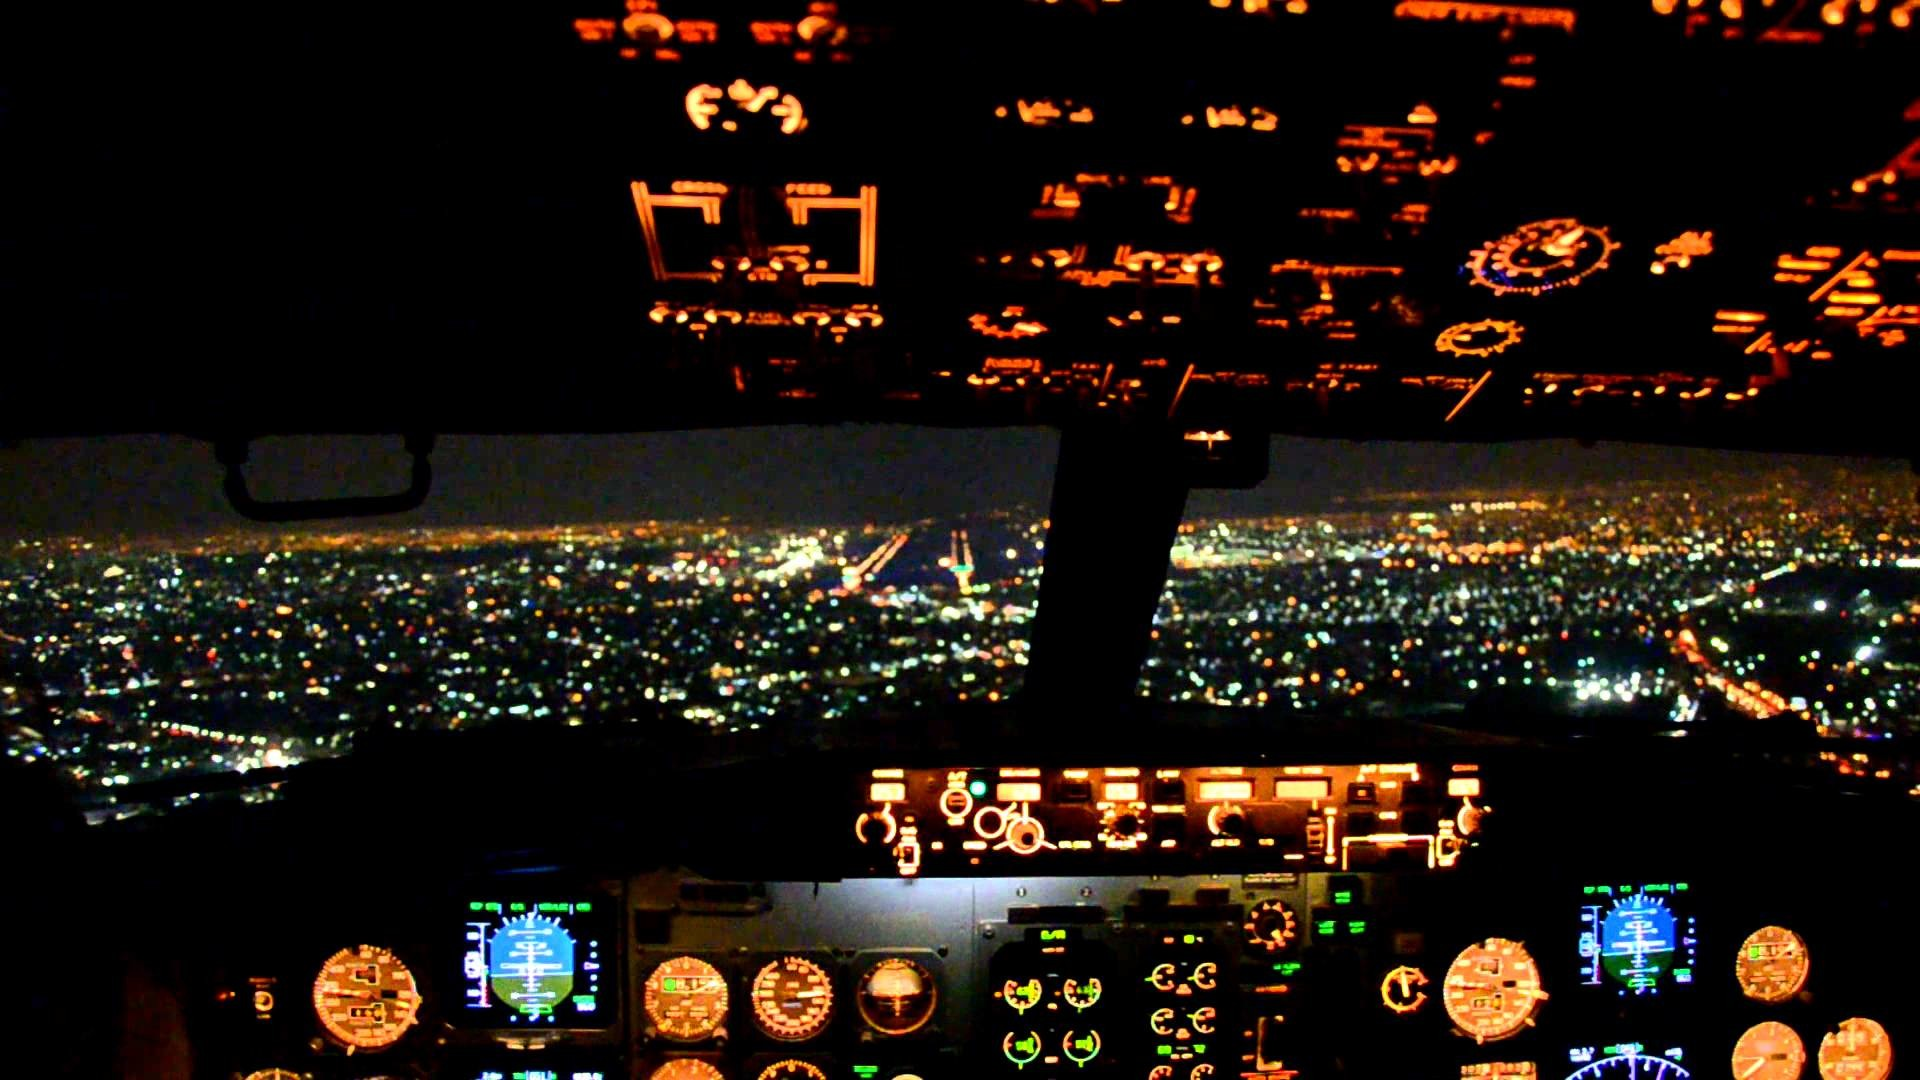 Free 3d Widescreen Wallpapers For Pc Airbus A380 Cockpit Wallpaper 68 Images